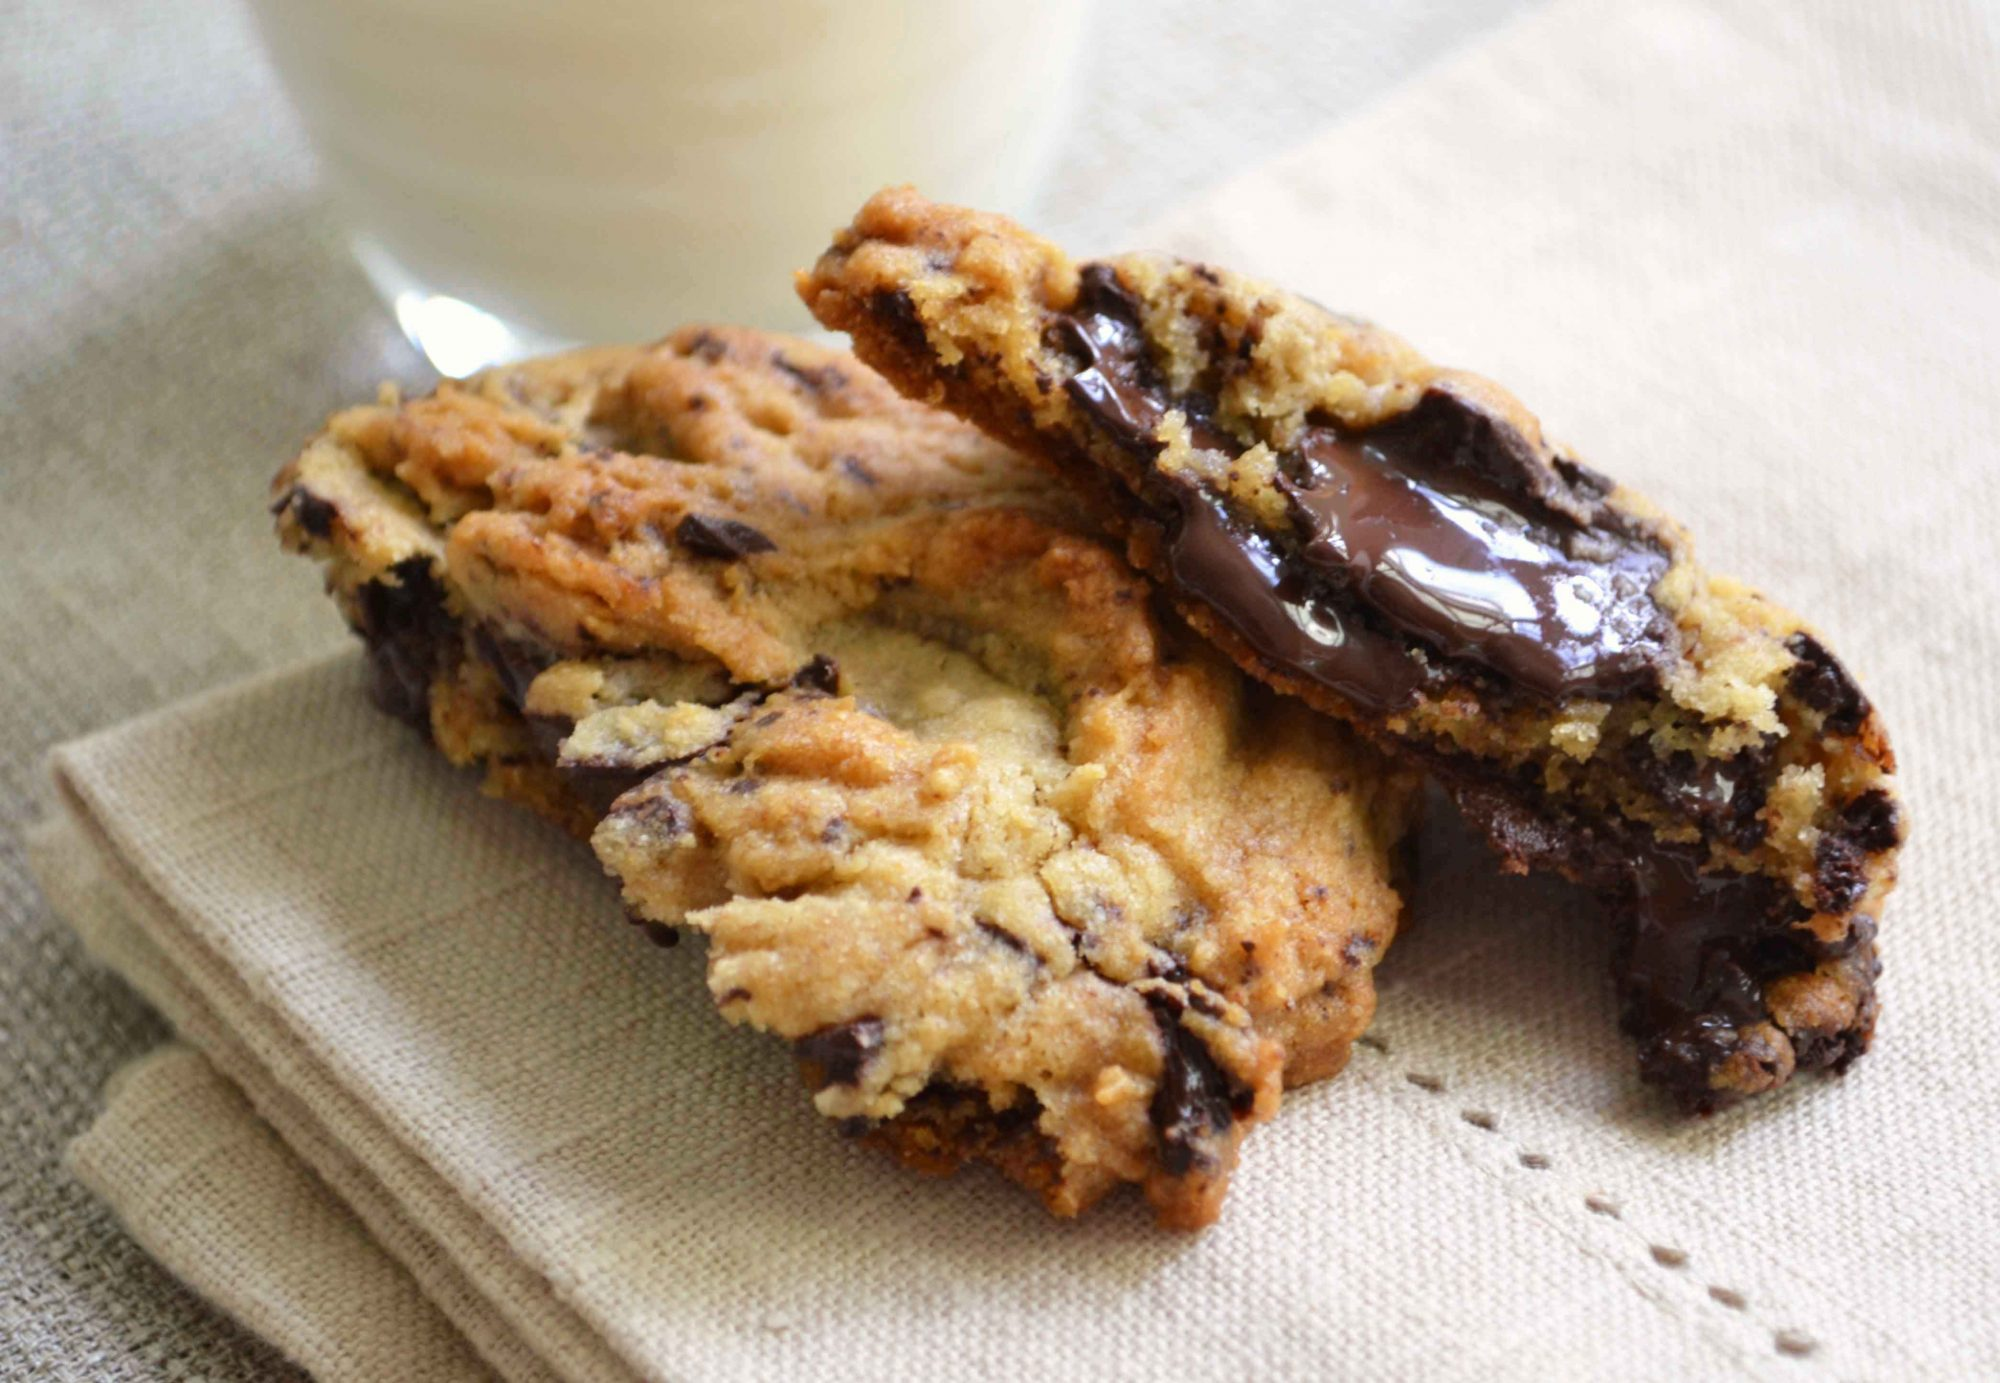 Gwen's Chocolate chunk cookies